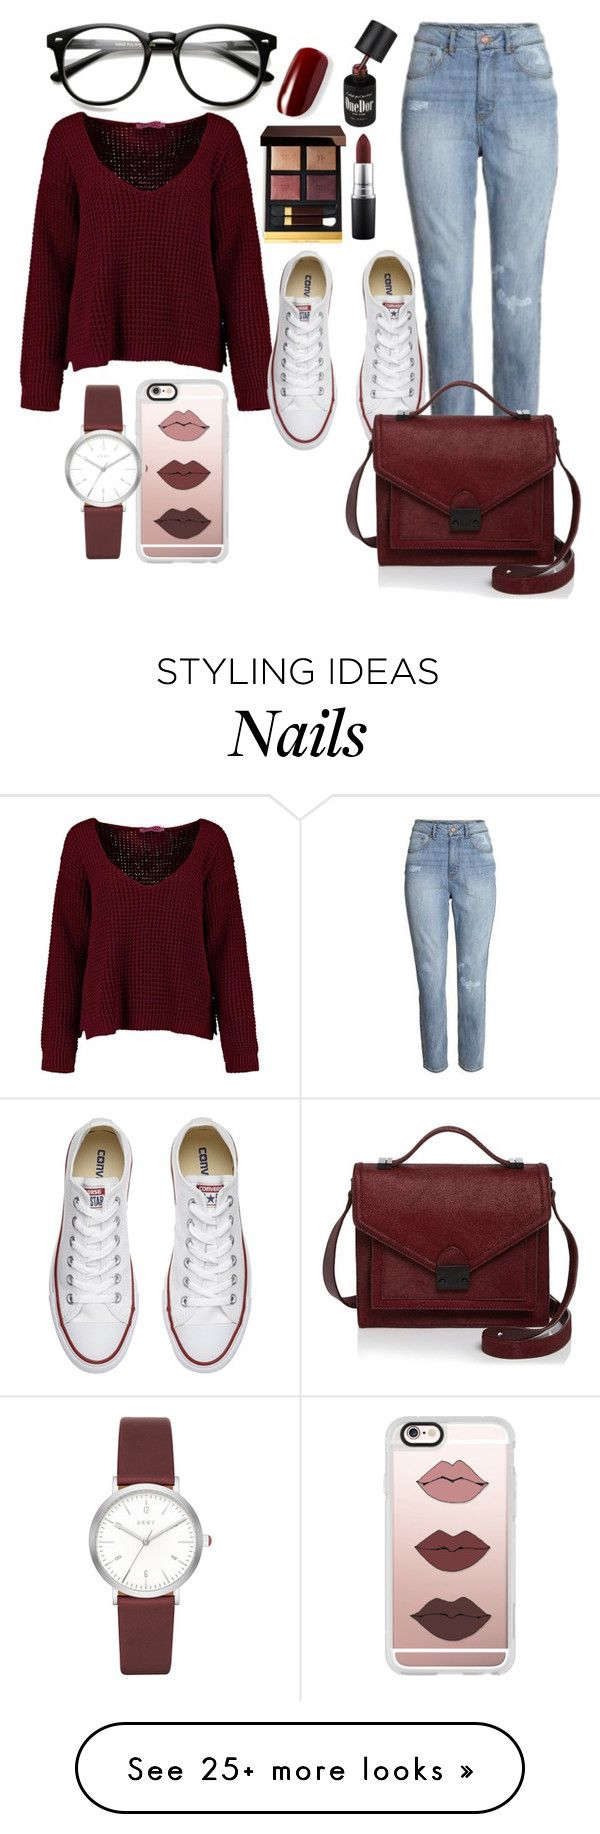 """""""casual"""" by chantal-07 on Polyvore featuring H&M, Converse, Tom Ford, Casetify, Loeffler Randall, DKNY, MAC Cosmetics, casual and plain"""